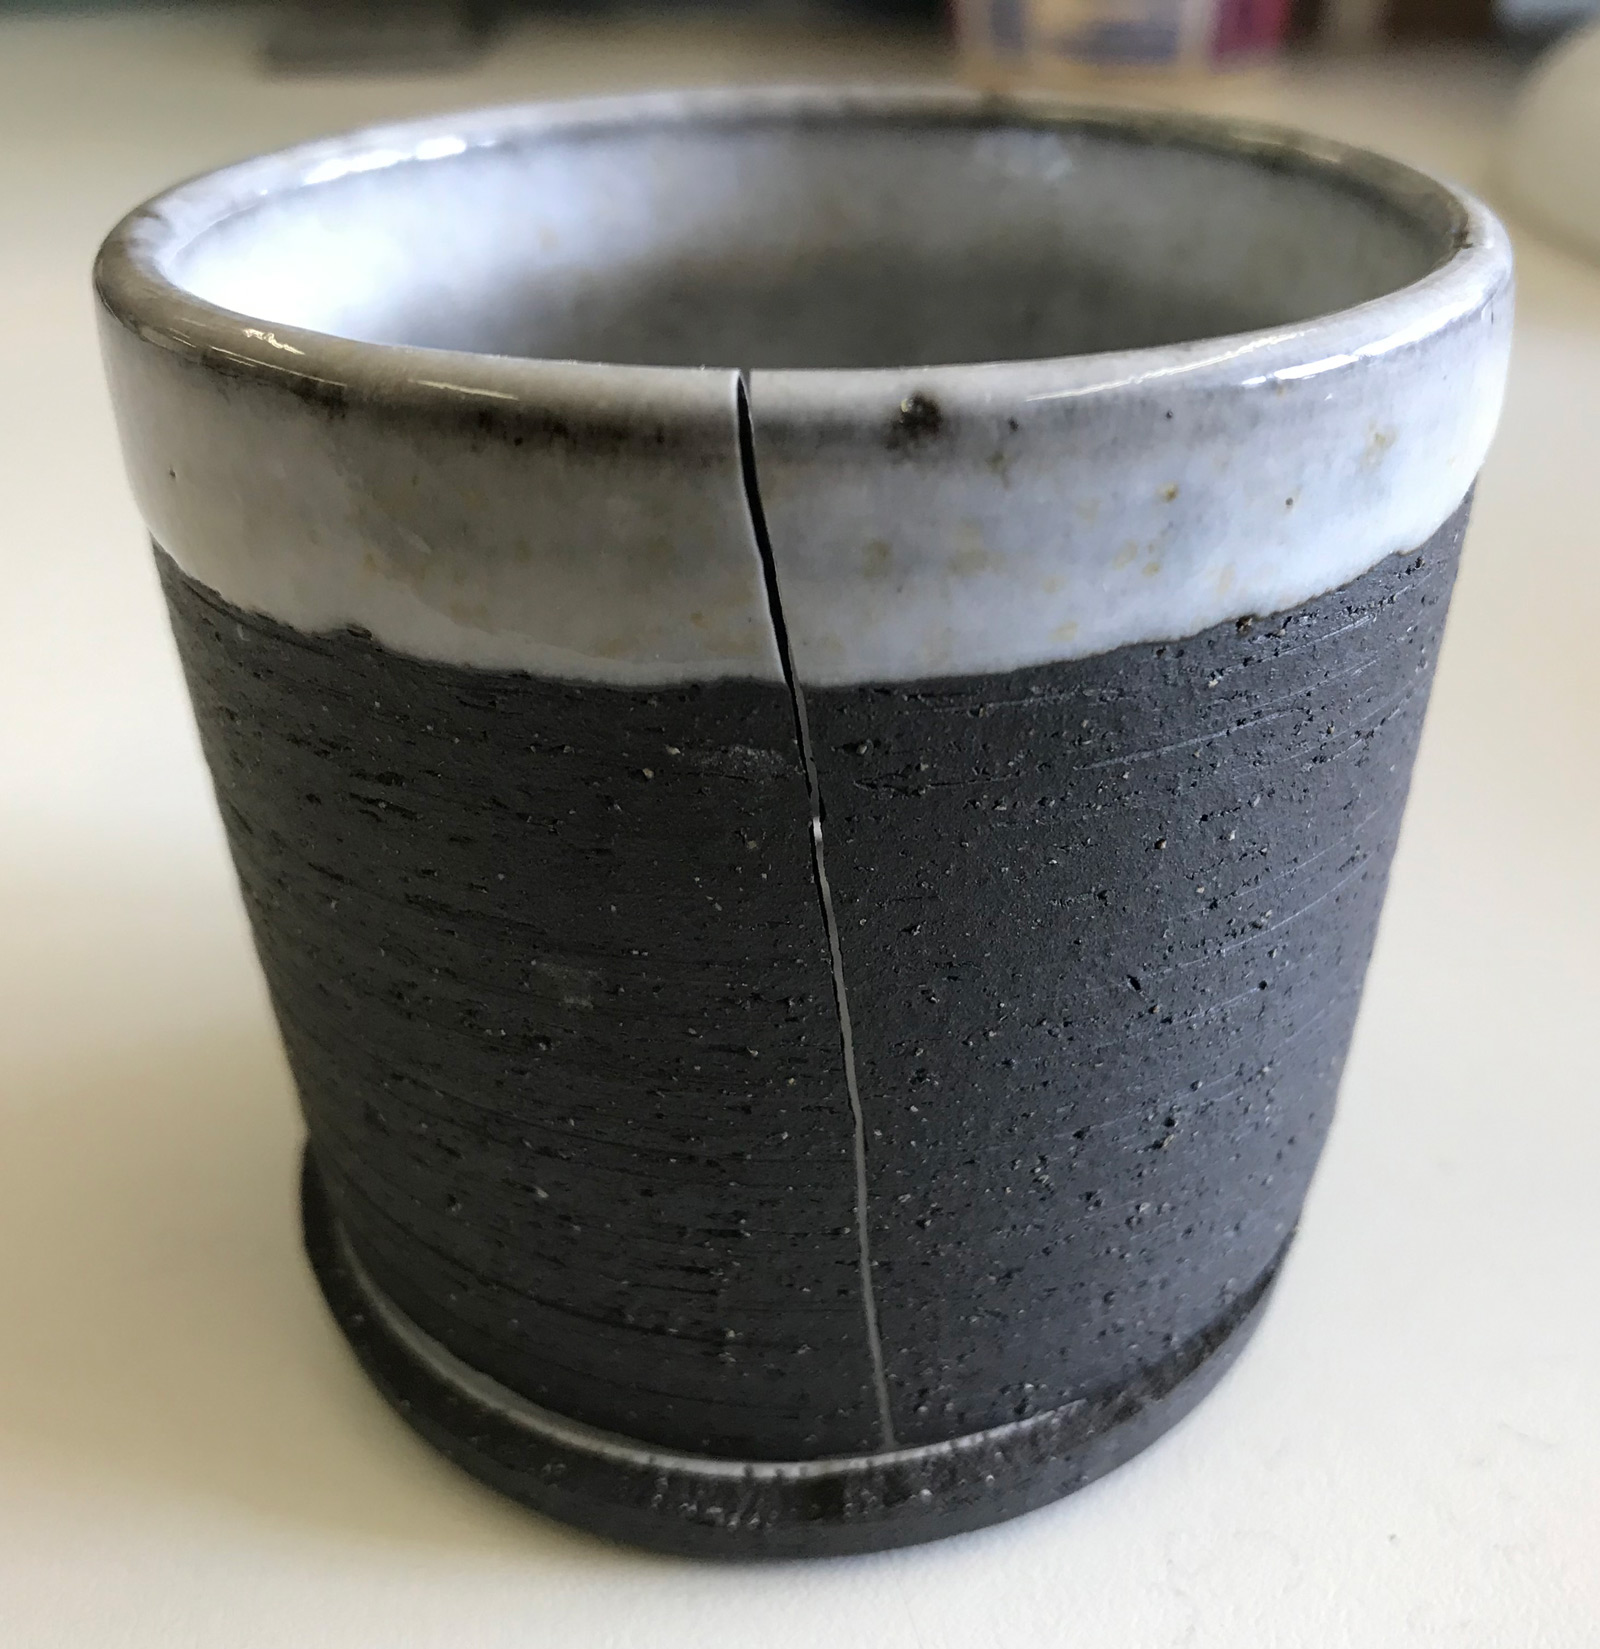 A glaze is pushing outward from the inside of this cup